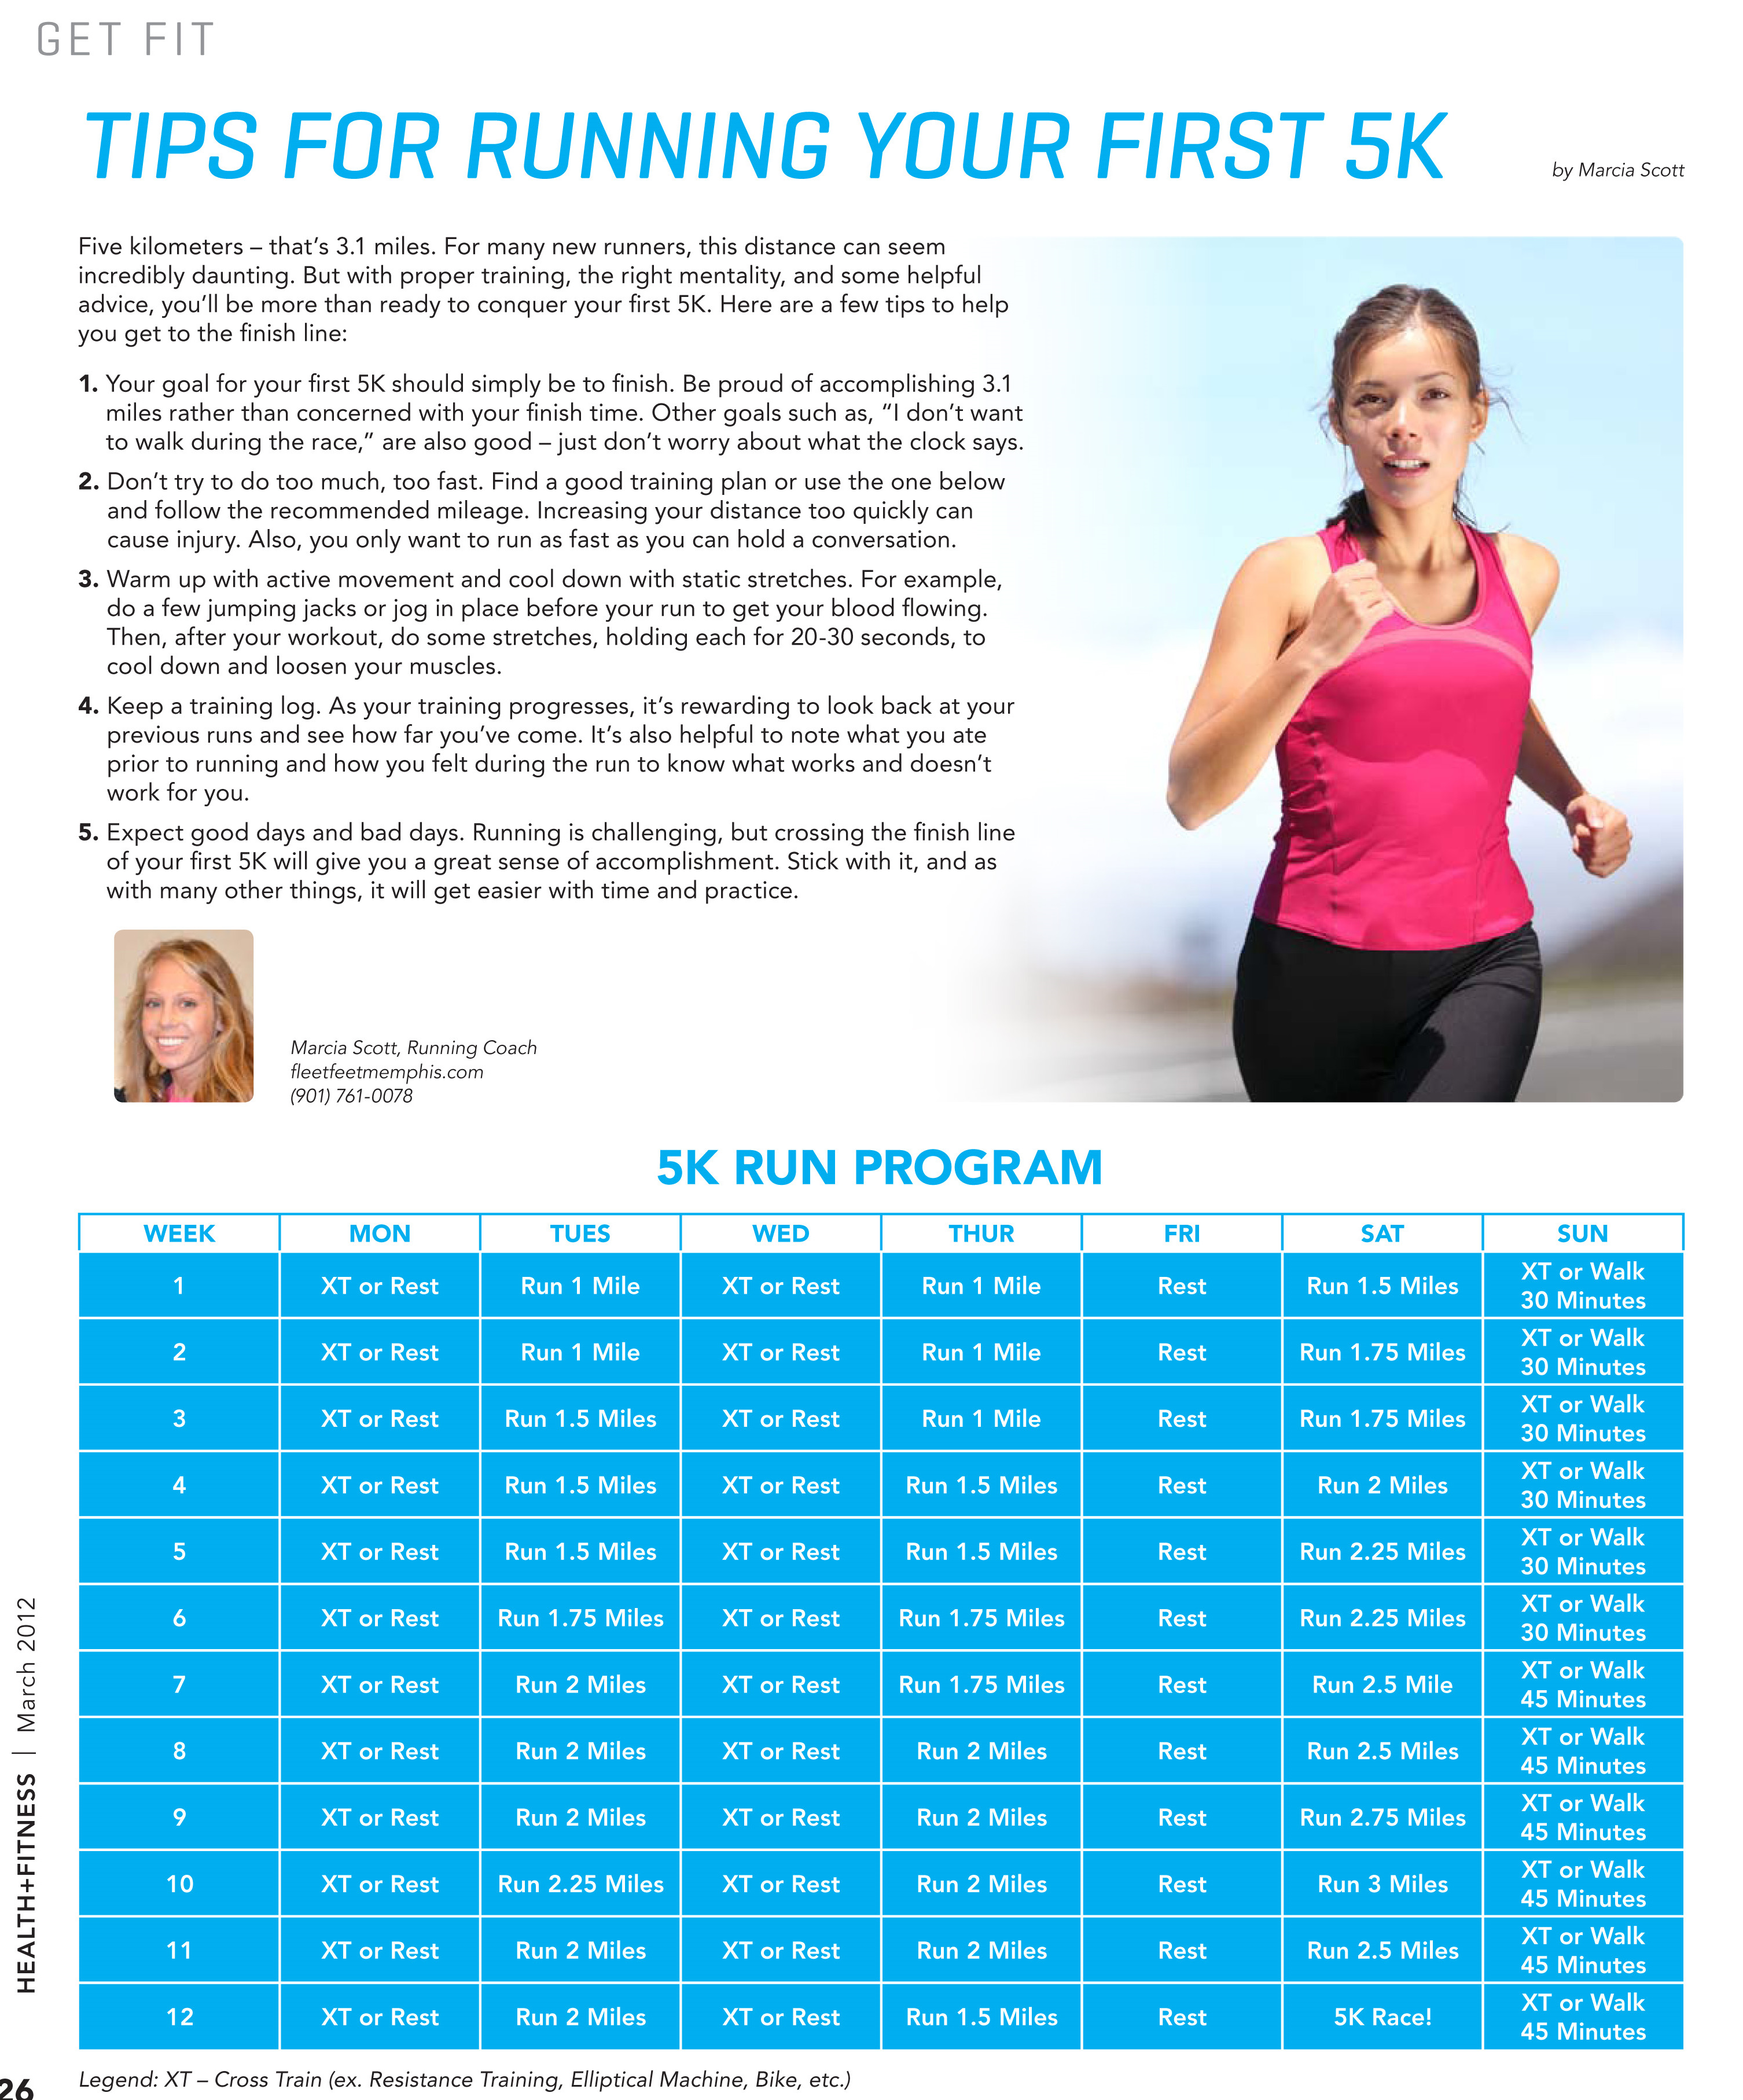 Tips For Your First 5K